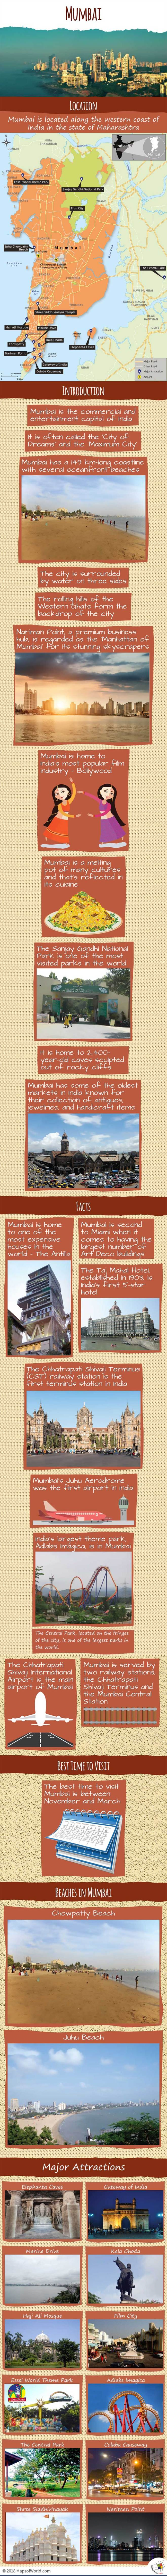 Infographic Depicting Mumbai Tourist Attractions